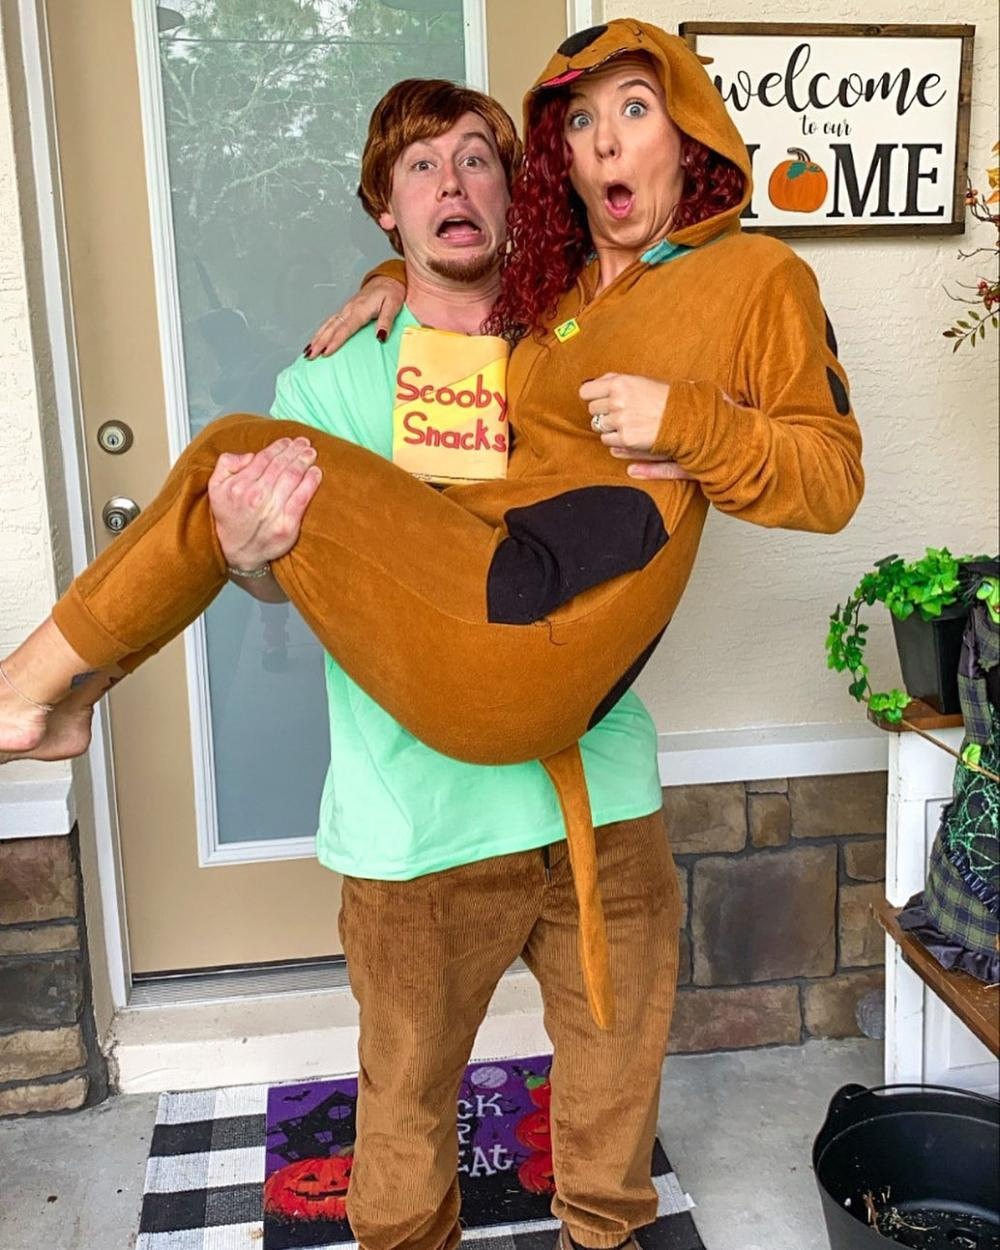 Scooby doo and shaggy cute couple halloween costumes